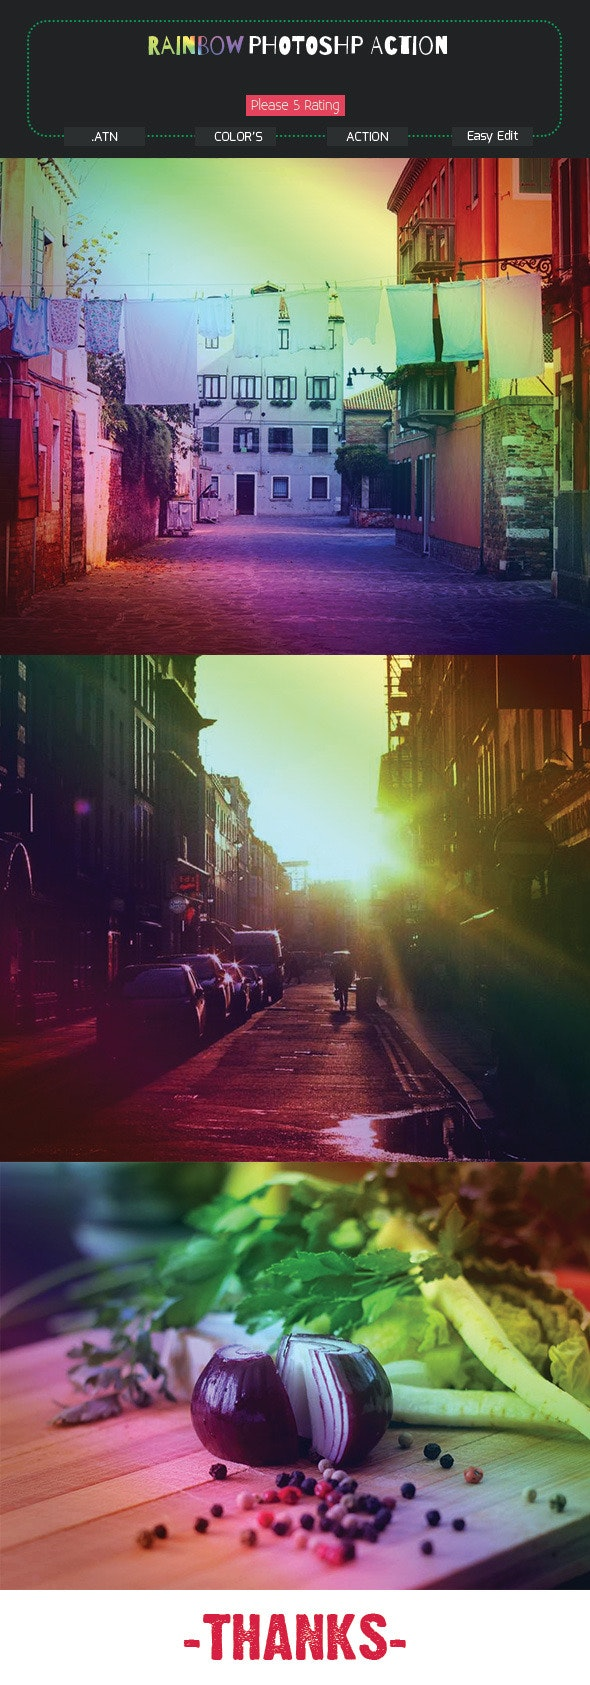 Rainbow Photoshop Action - Photo Effects Actions